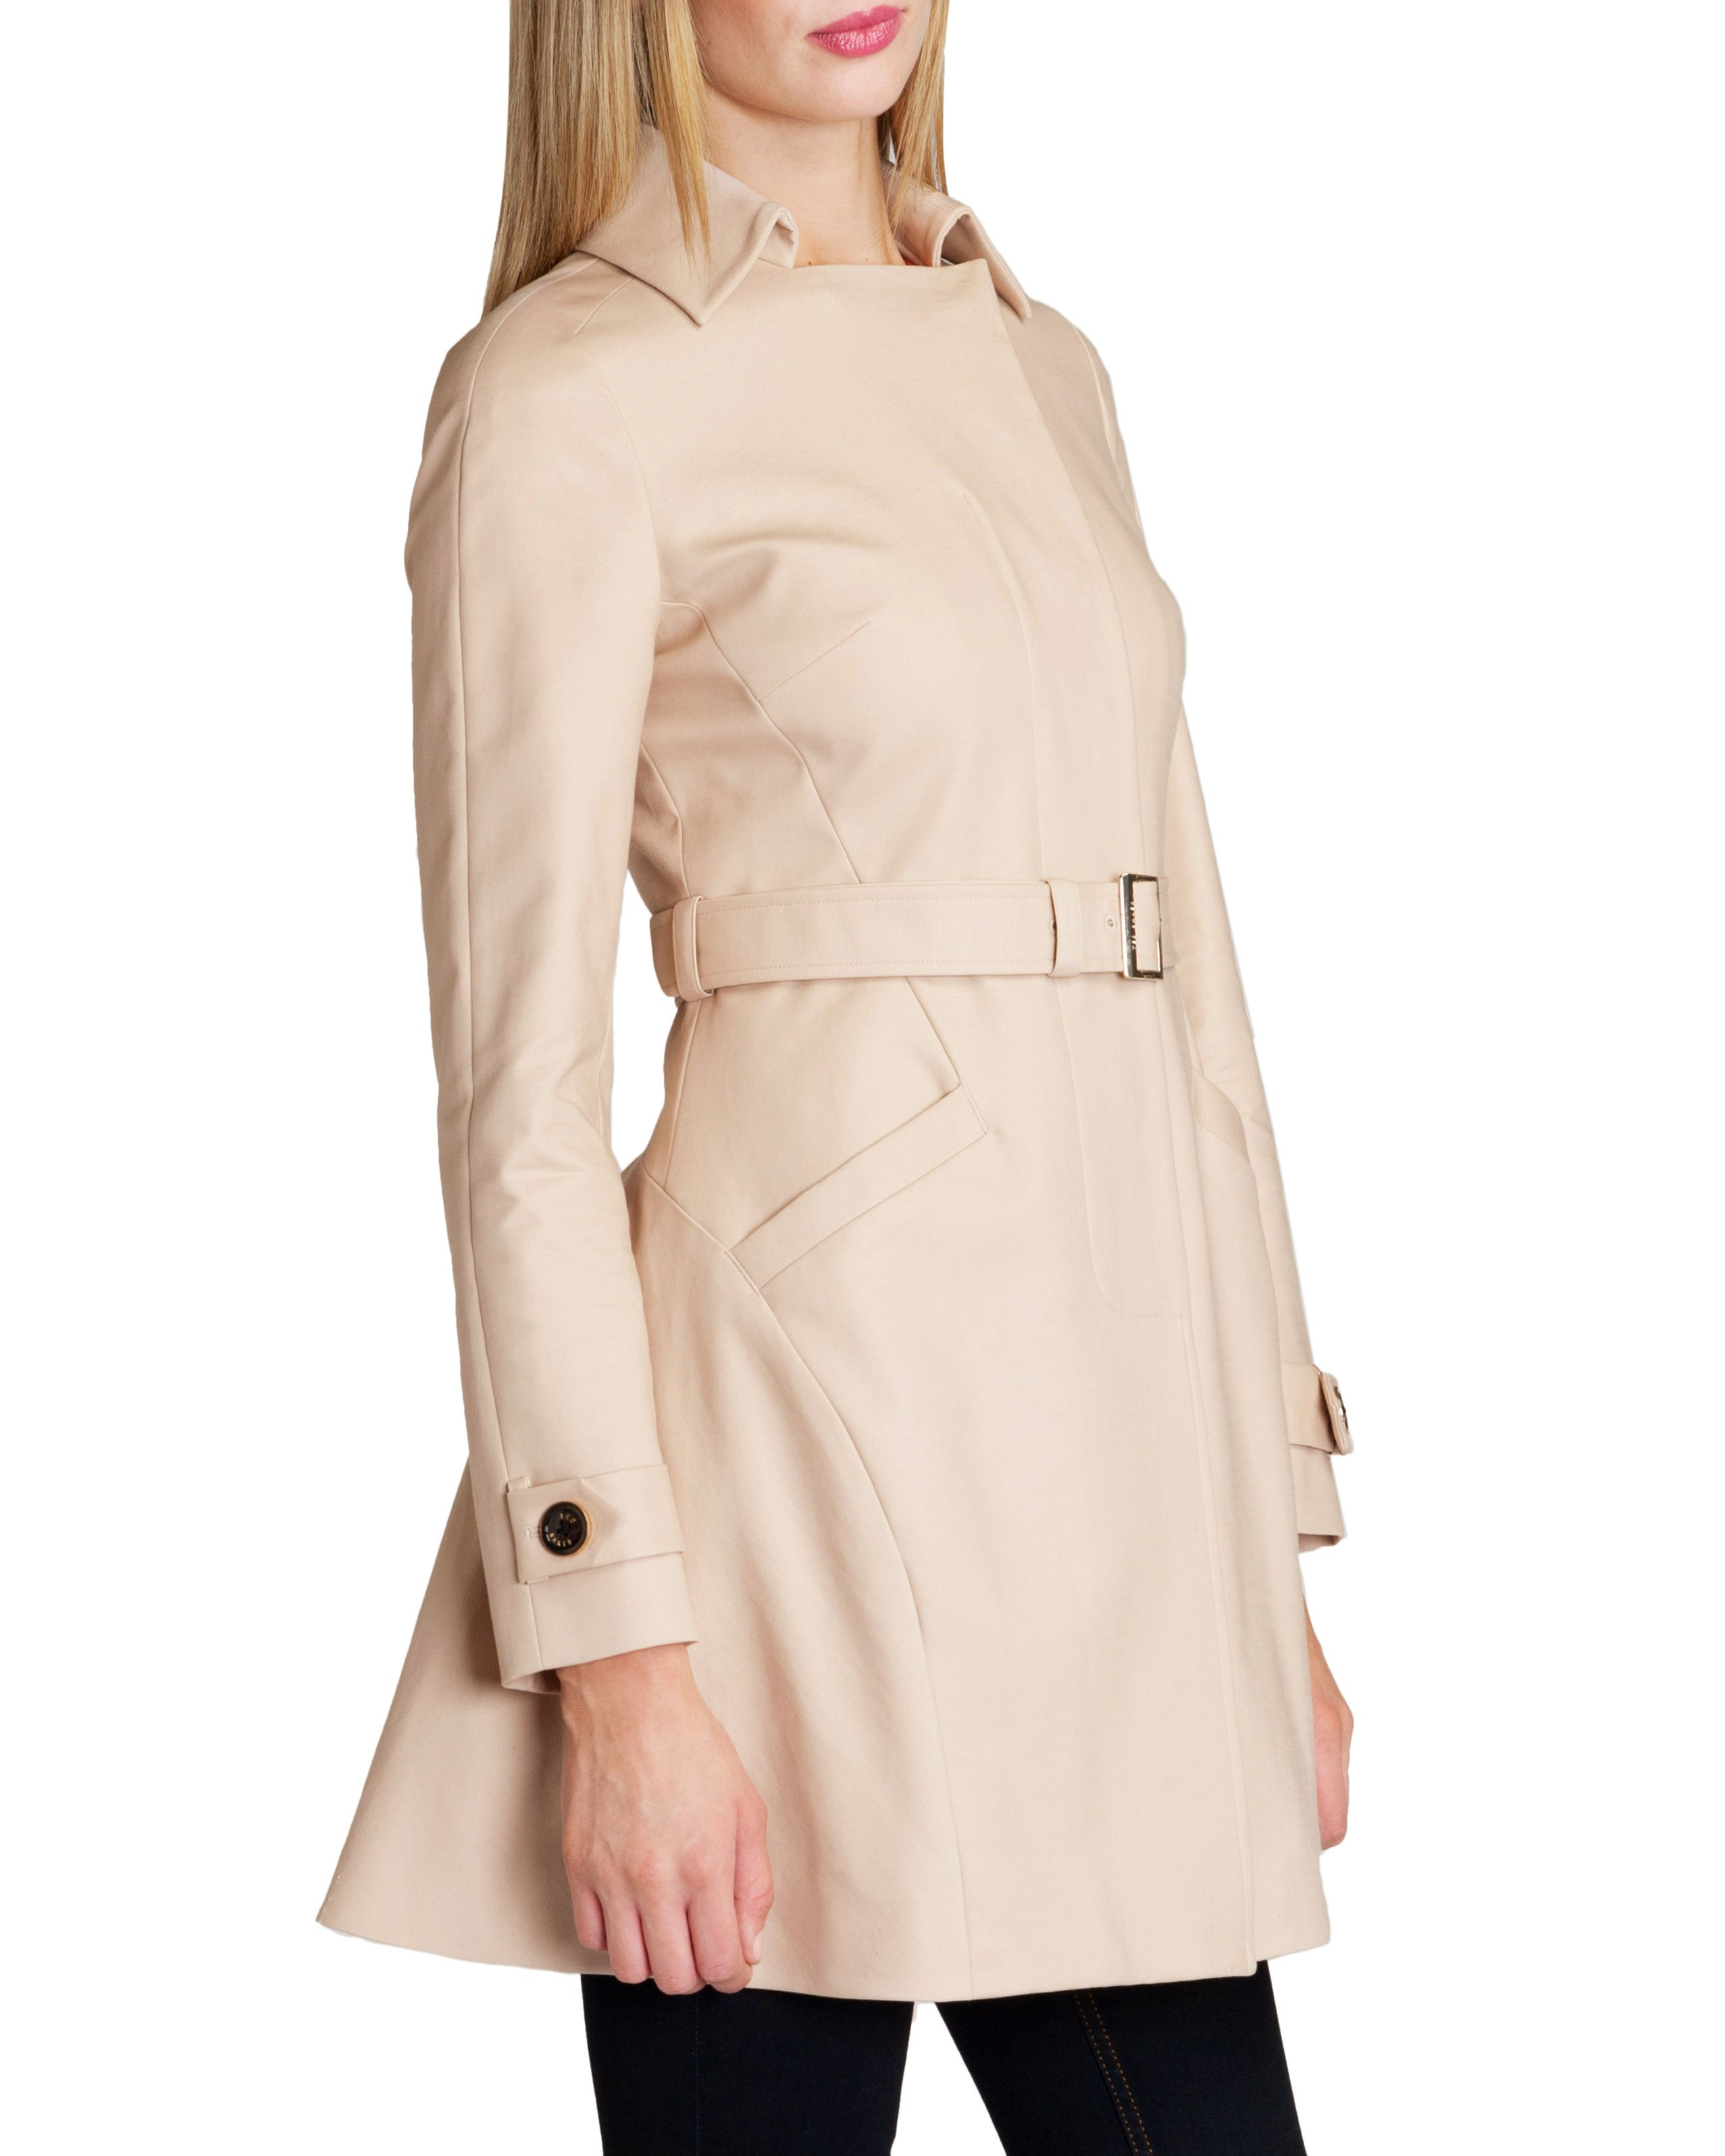 Meeliye panelled trench coat